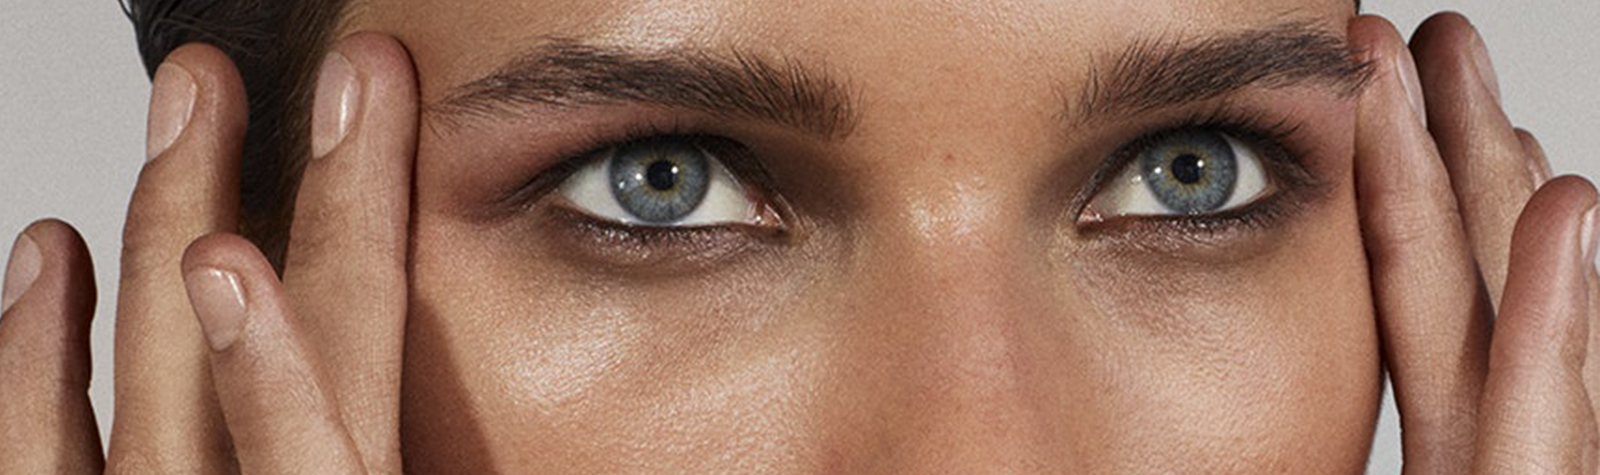 VOGUE Paris ·  3 Golden Rules For Taking Care Of The Skin Around Your Eyes